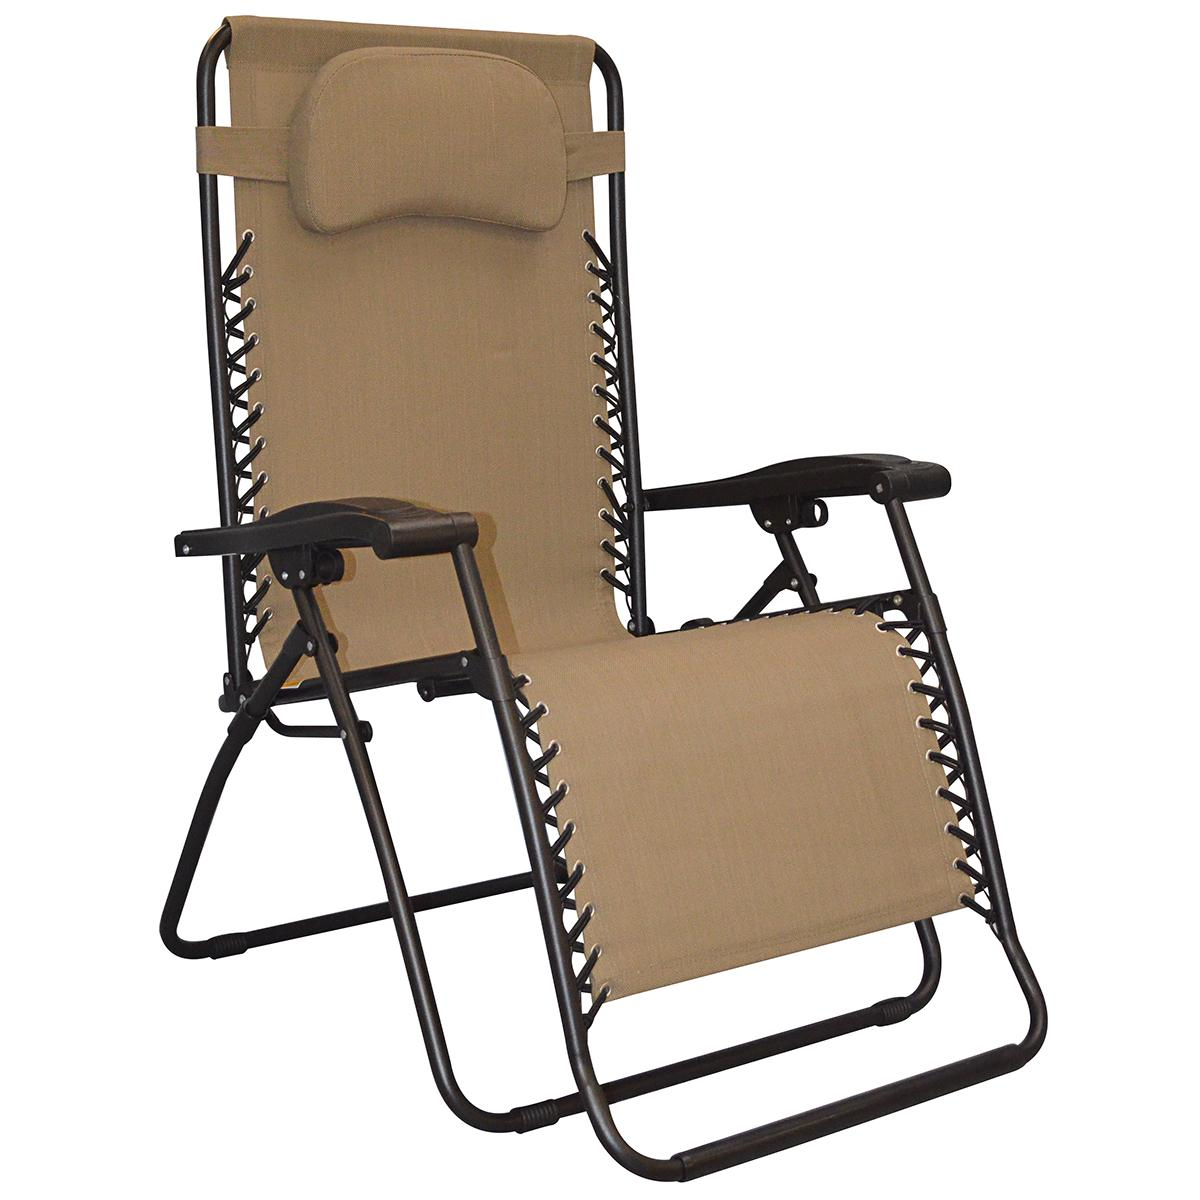 Oversized Zero Gravity Chair With Canopy Amazon Caravan Sports Infinity Oversized Zero